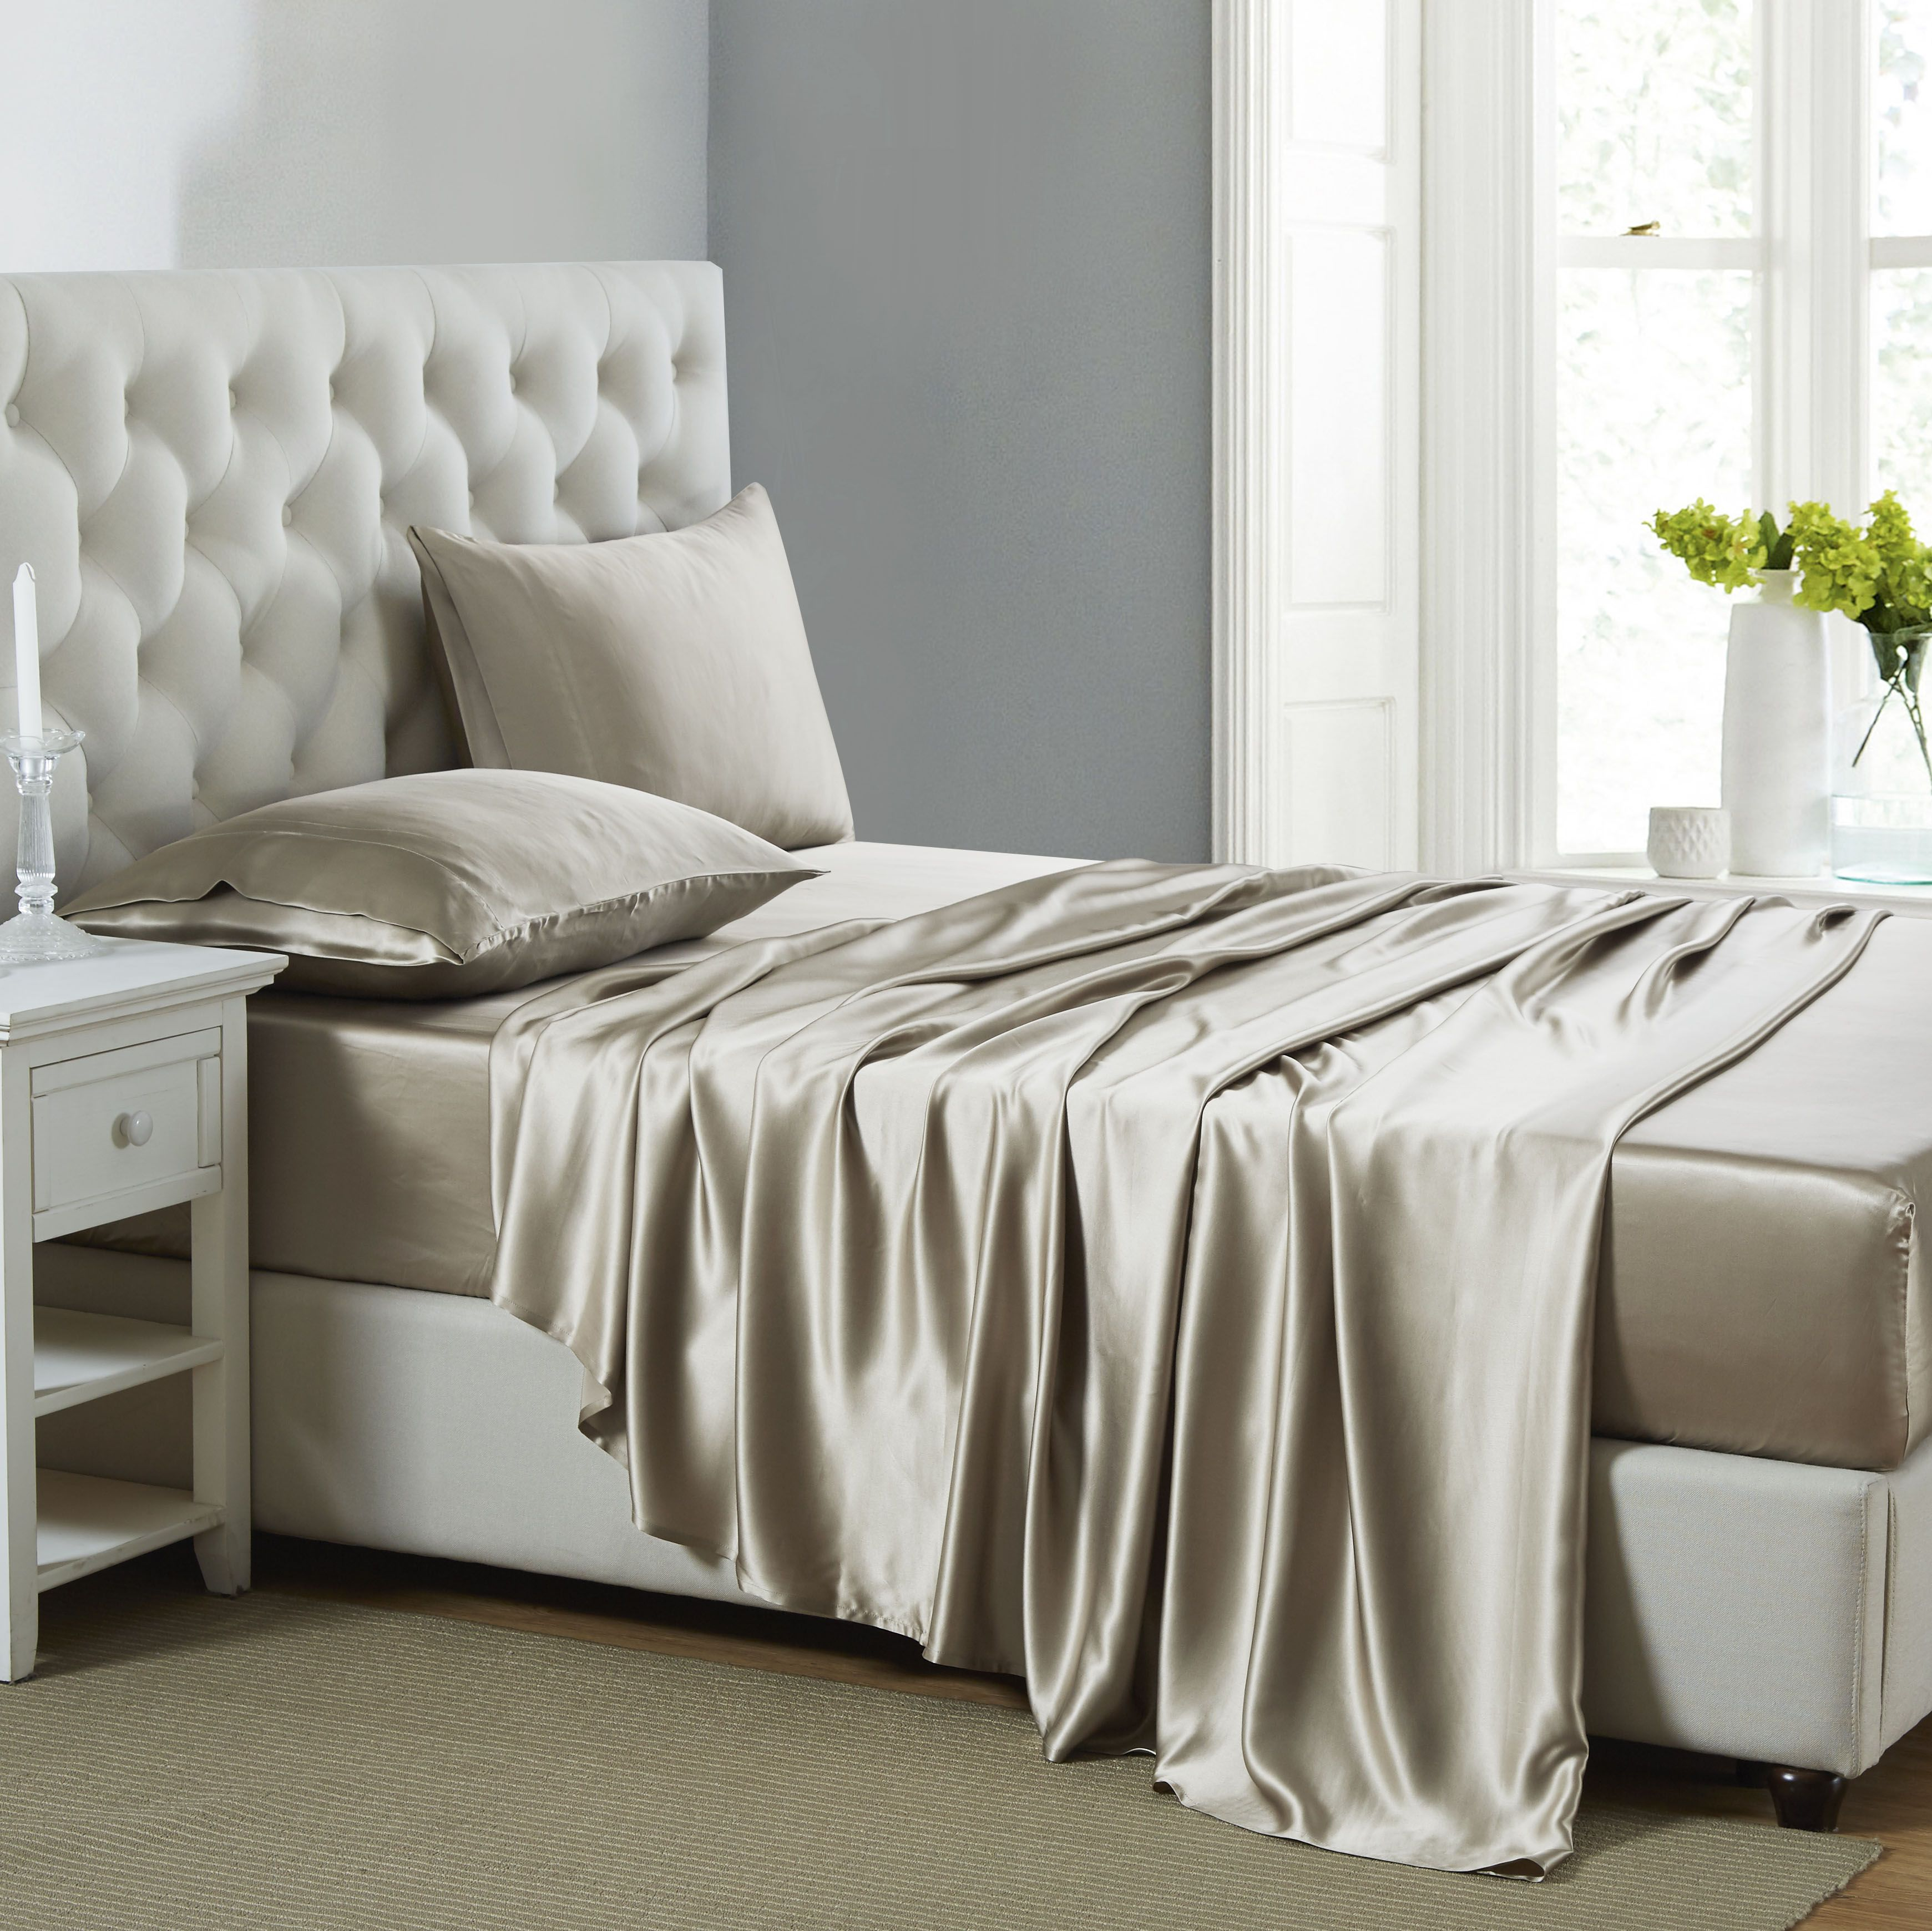 with comforter silk linen bed sets and sheets bedding of set mulberry sheet size red full style